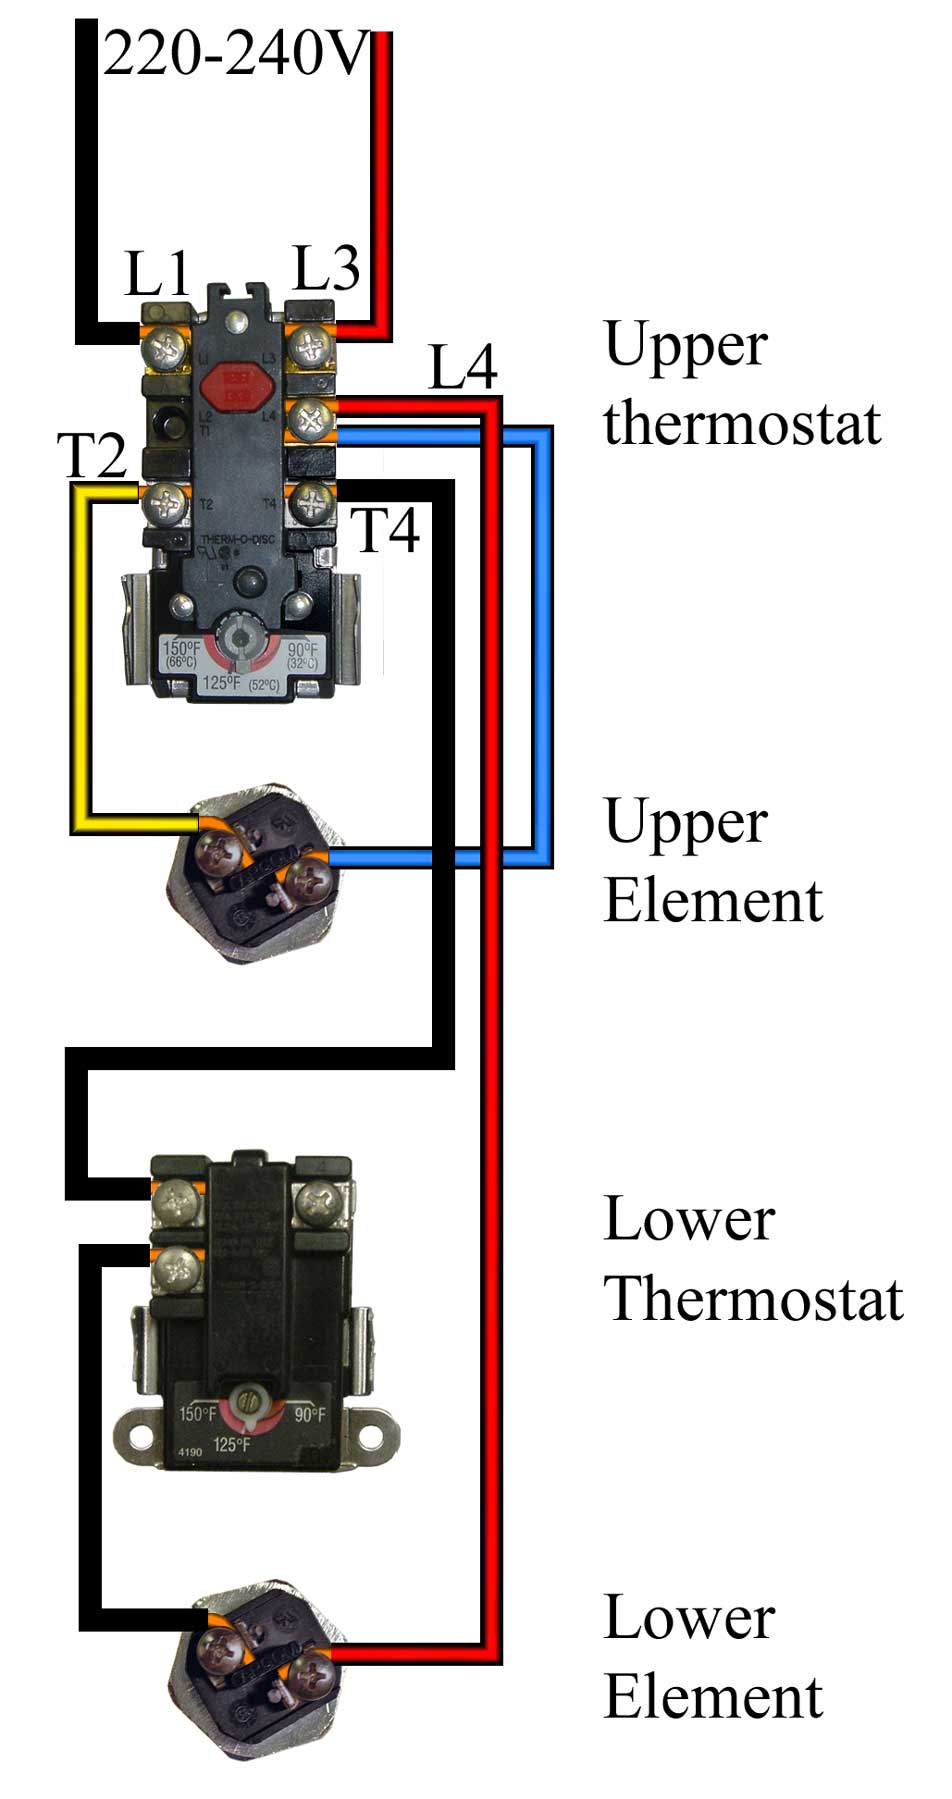 Water heater wiring w num10 how to wire water heater thermostat wiring diagram for a hot water heater at gsmportal.co